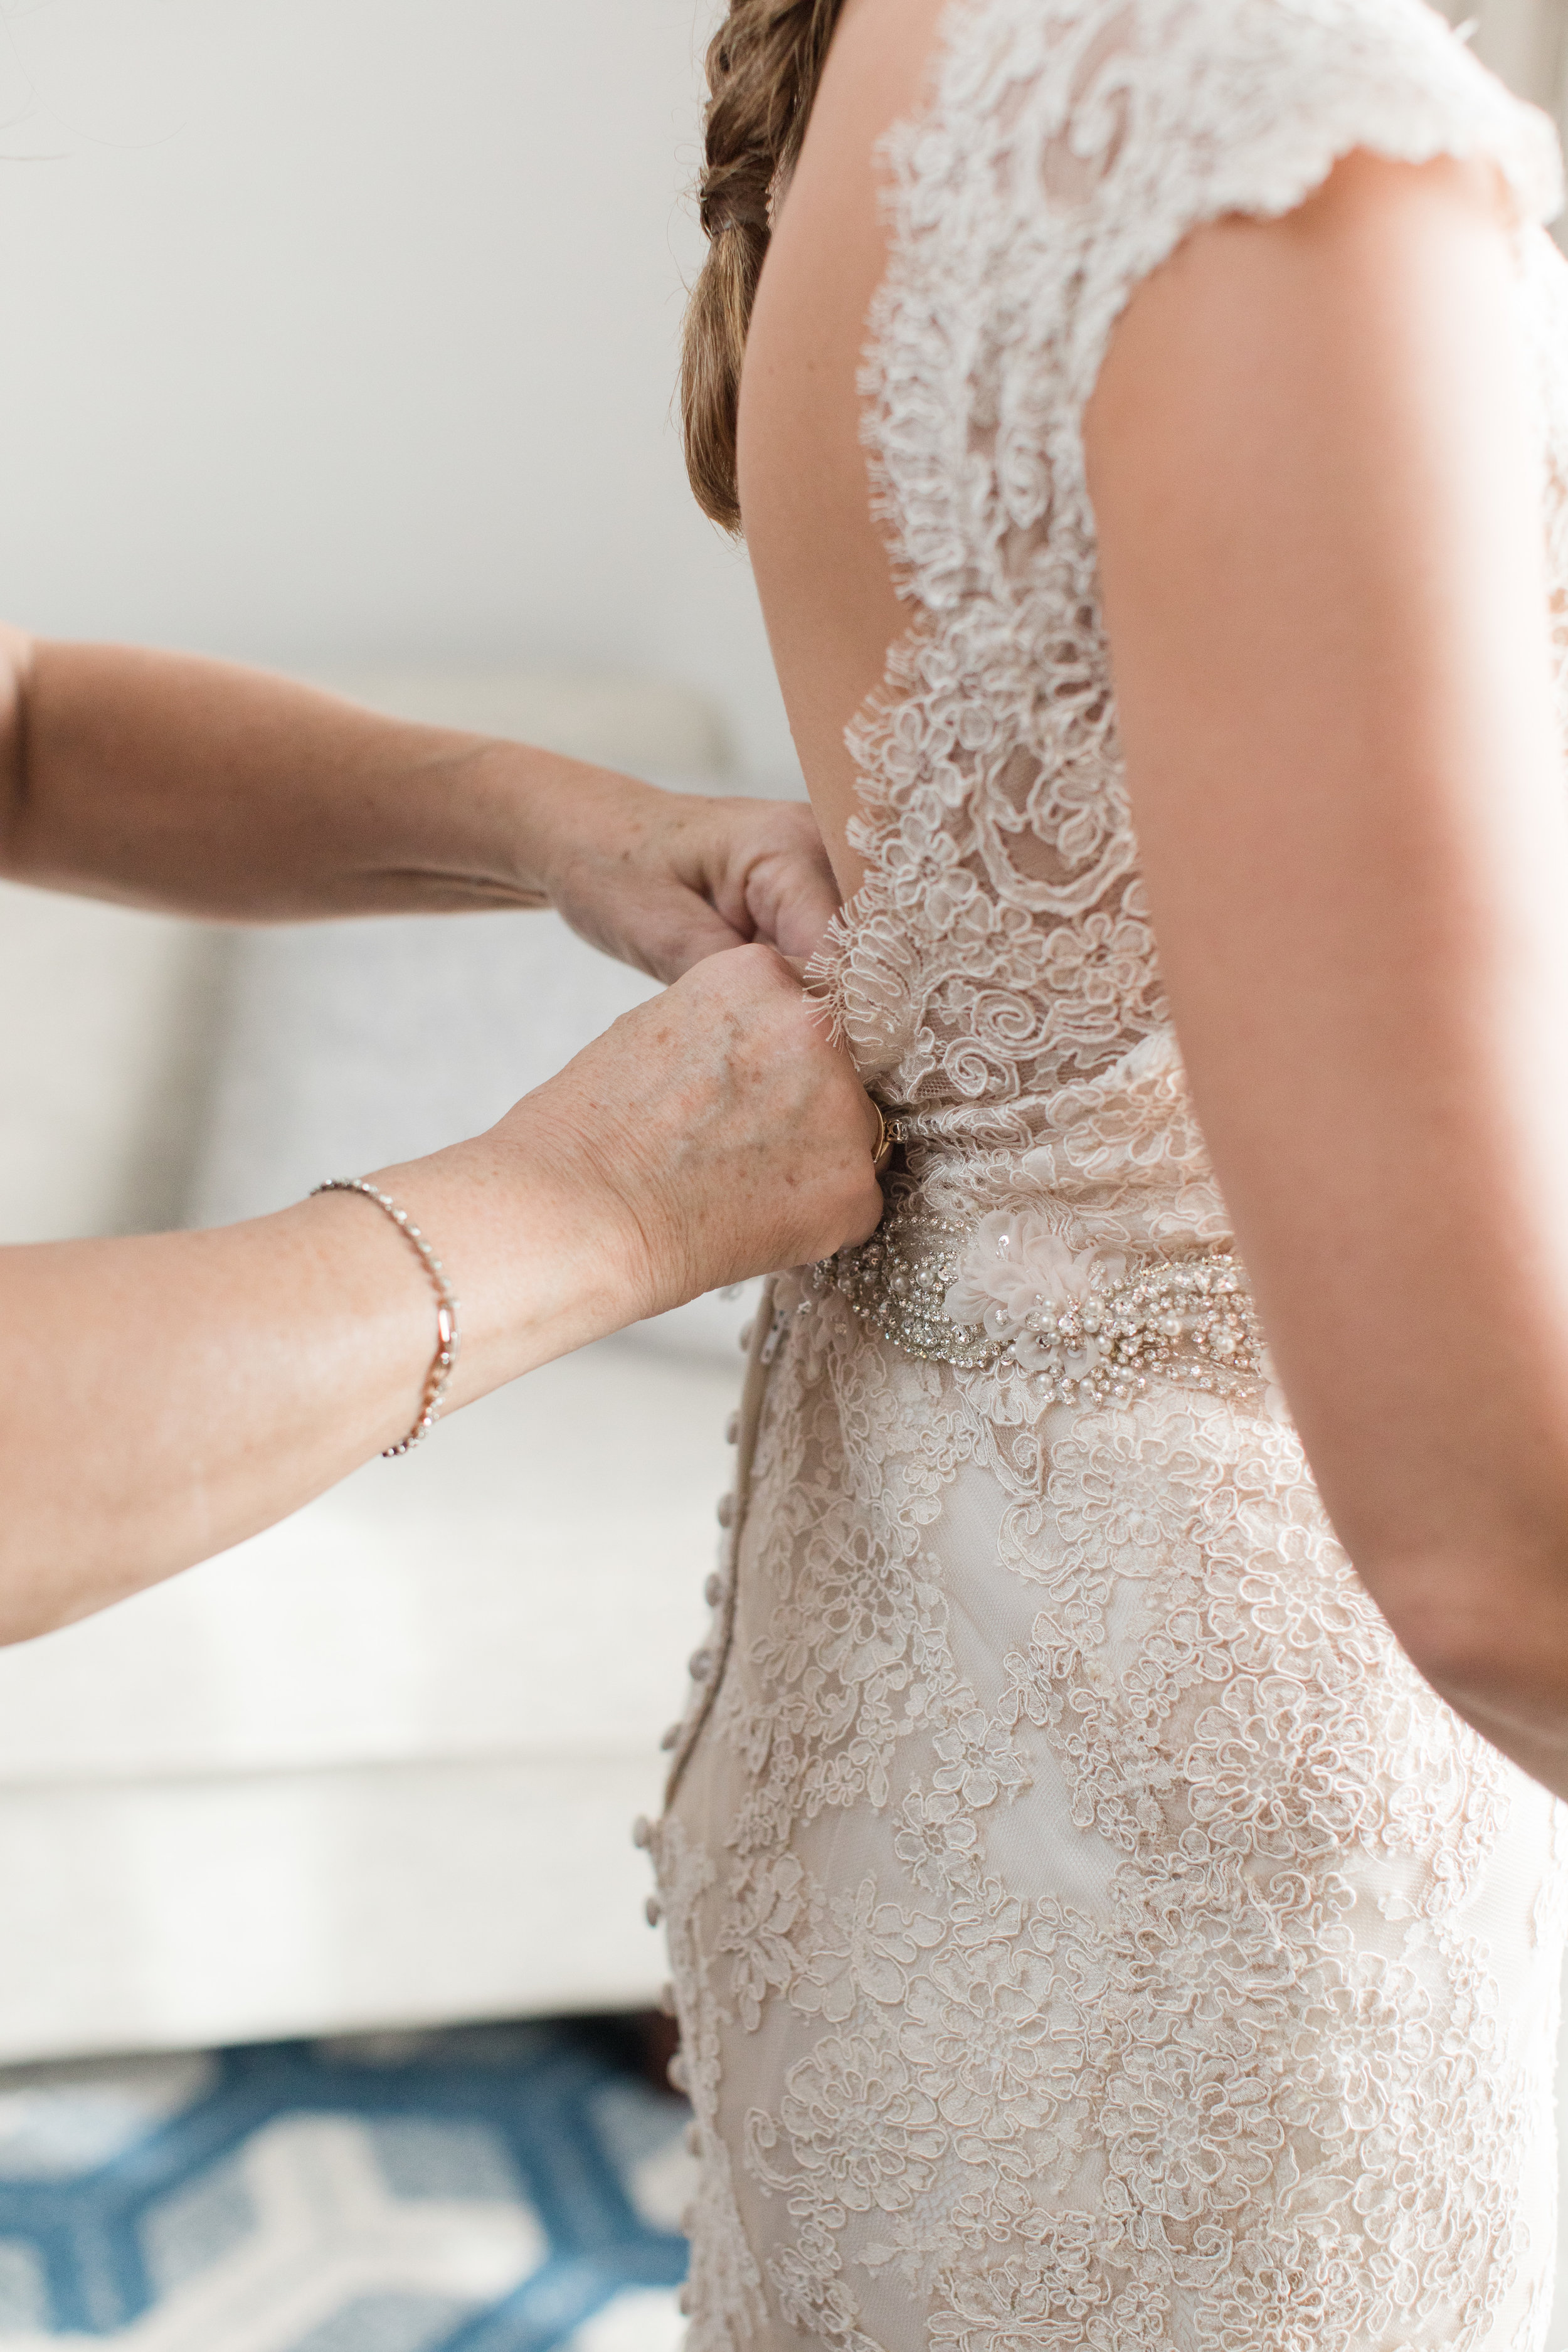 Mom buttoning brides lace dress with beaded belt